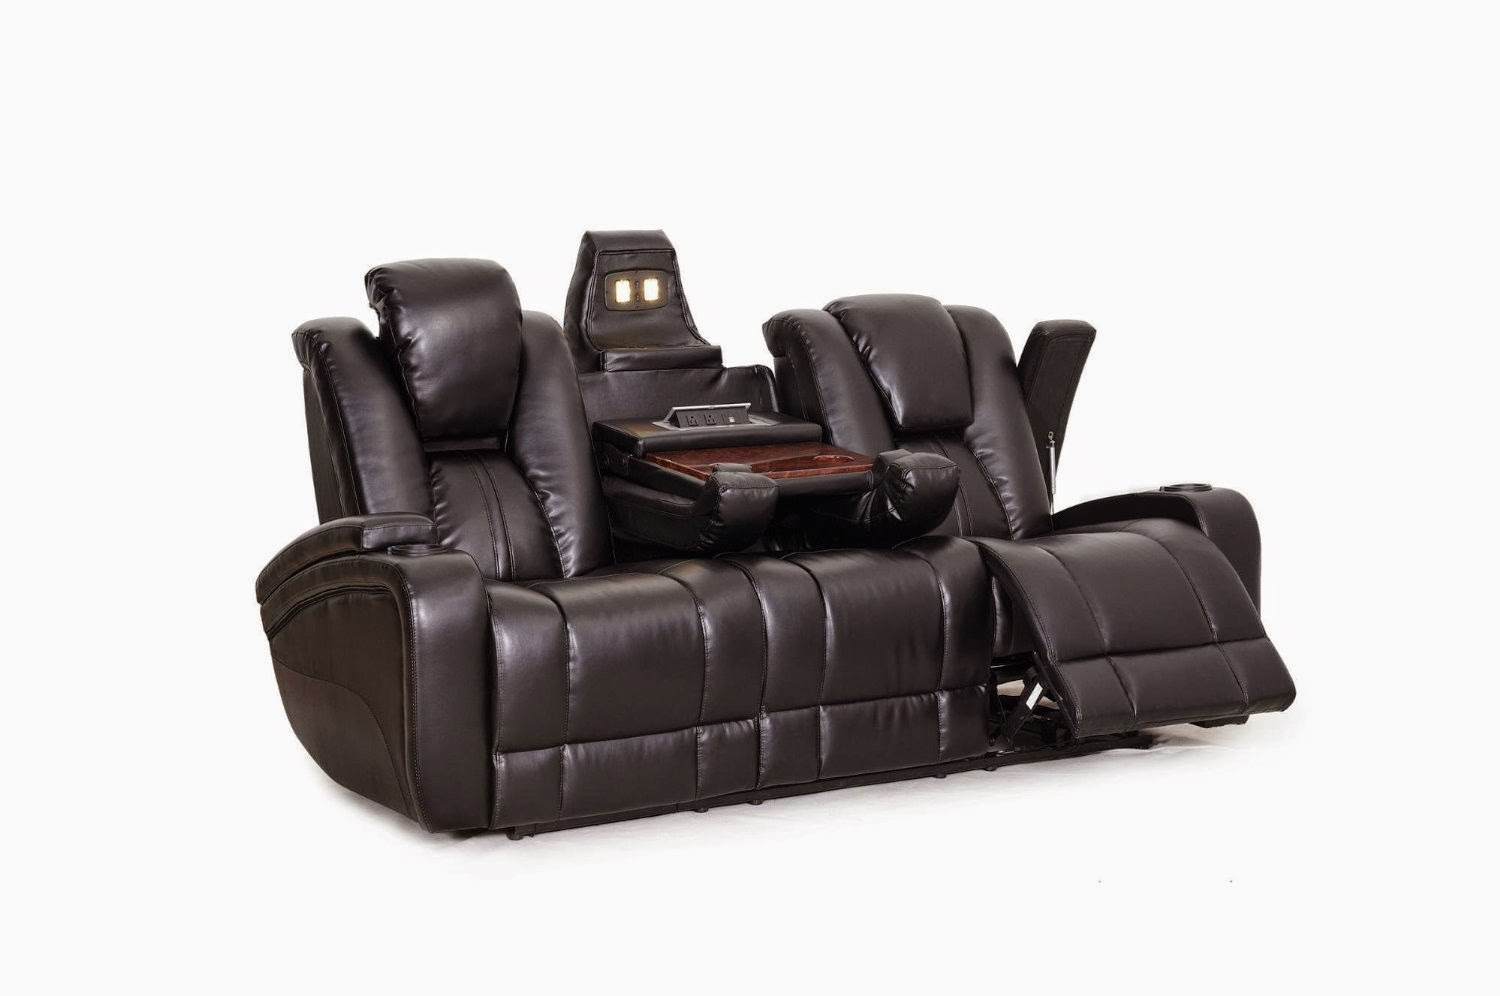 Power Reclining Leather Sofa Reviews  sc 1 st  The Best Reclining Sofa Reviews - blogger & The Best Reclining Sofa Reviews: Power Reclining Leather Sofa Reviews islam-shia.org